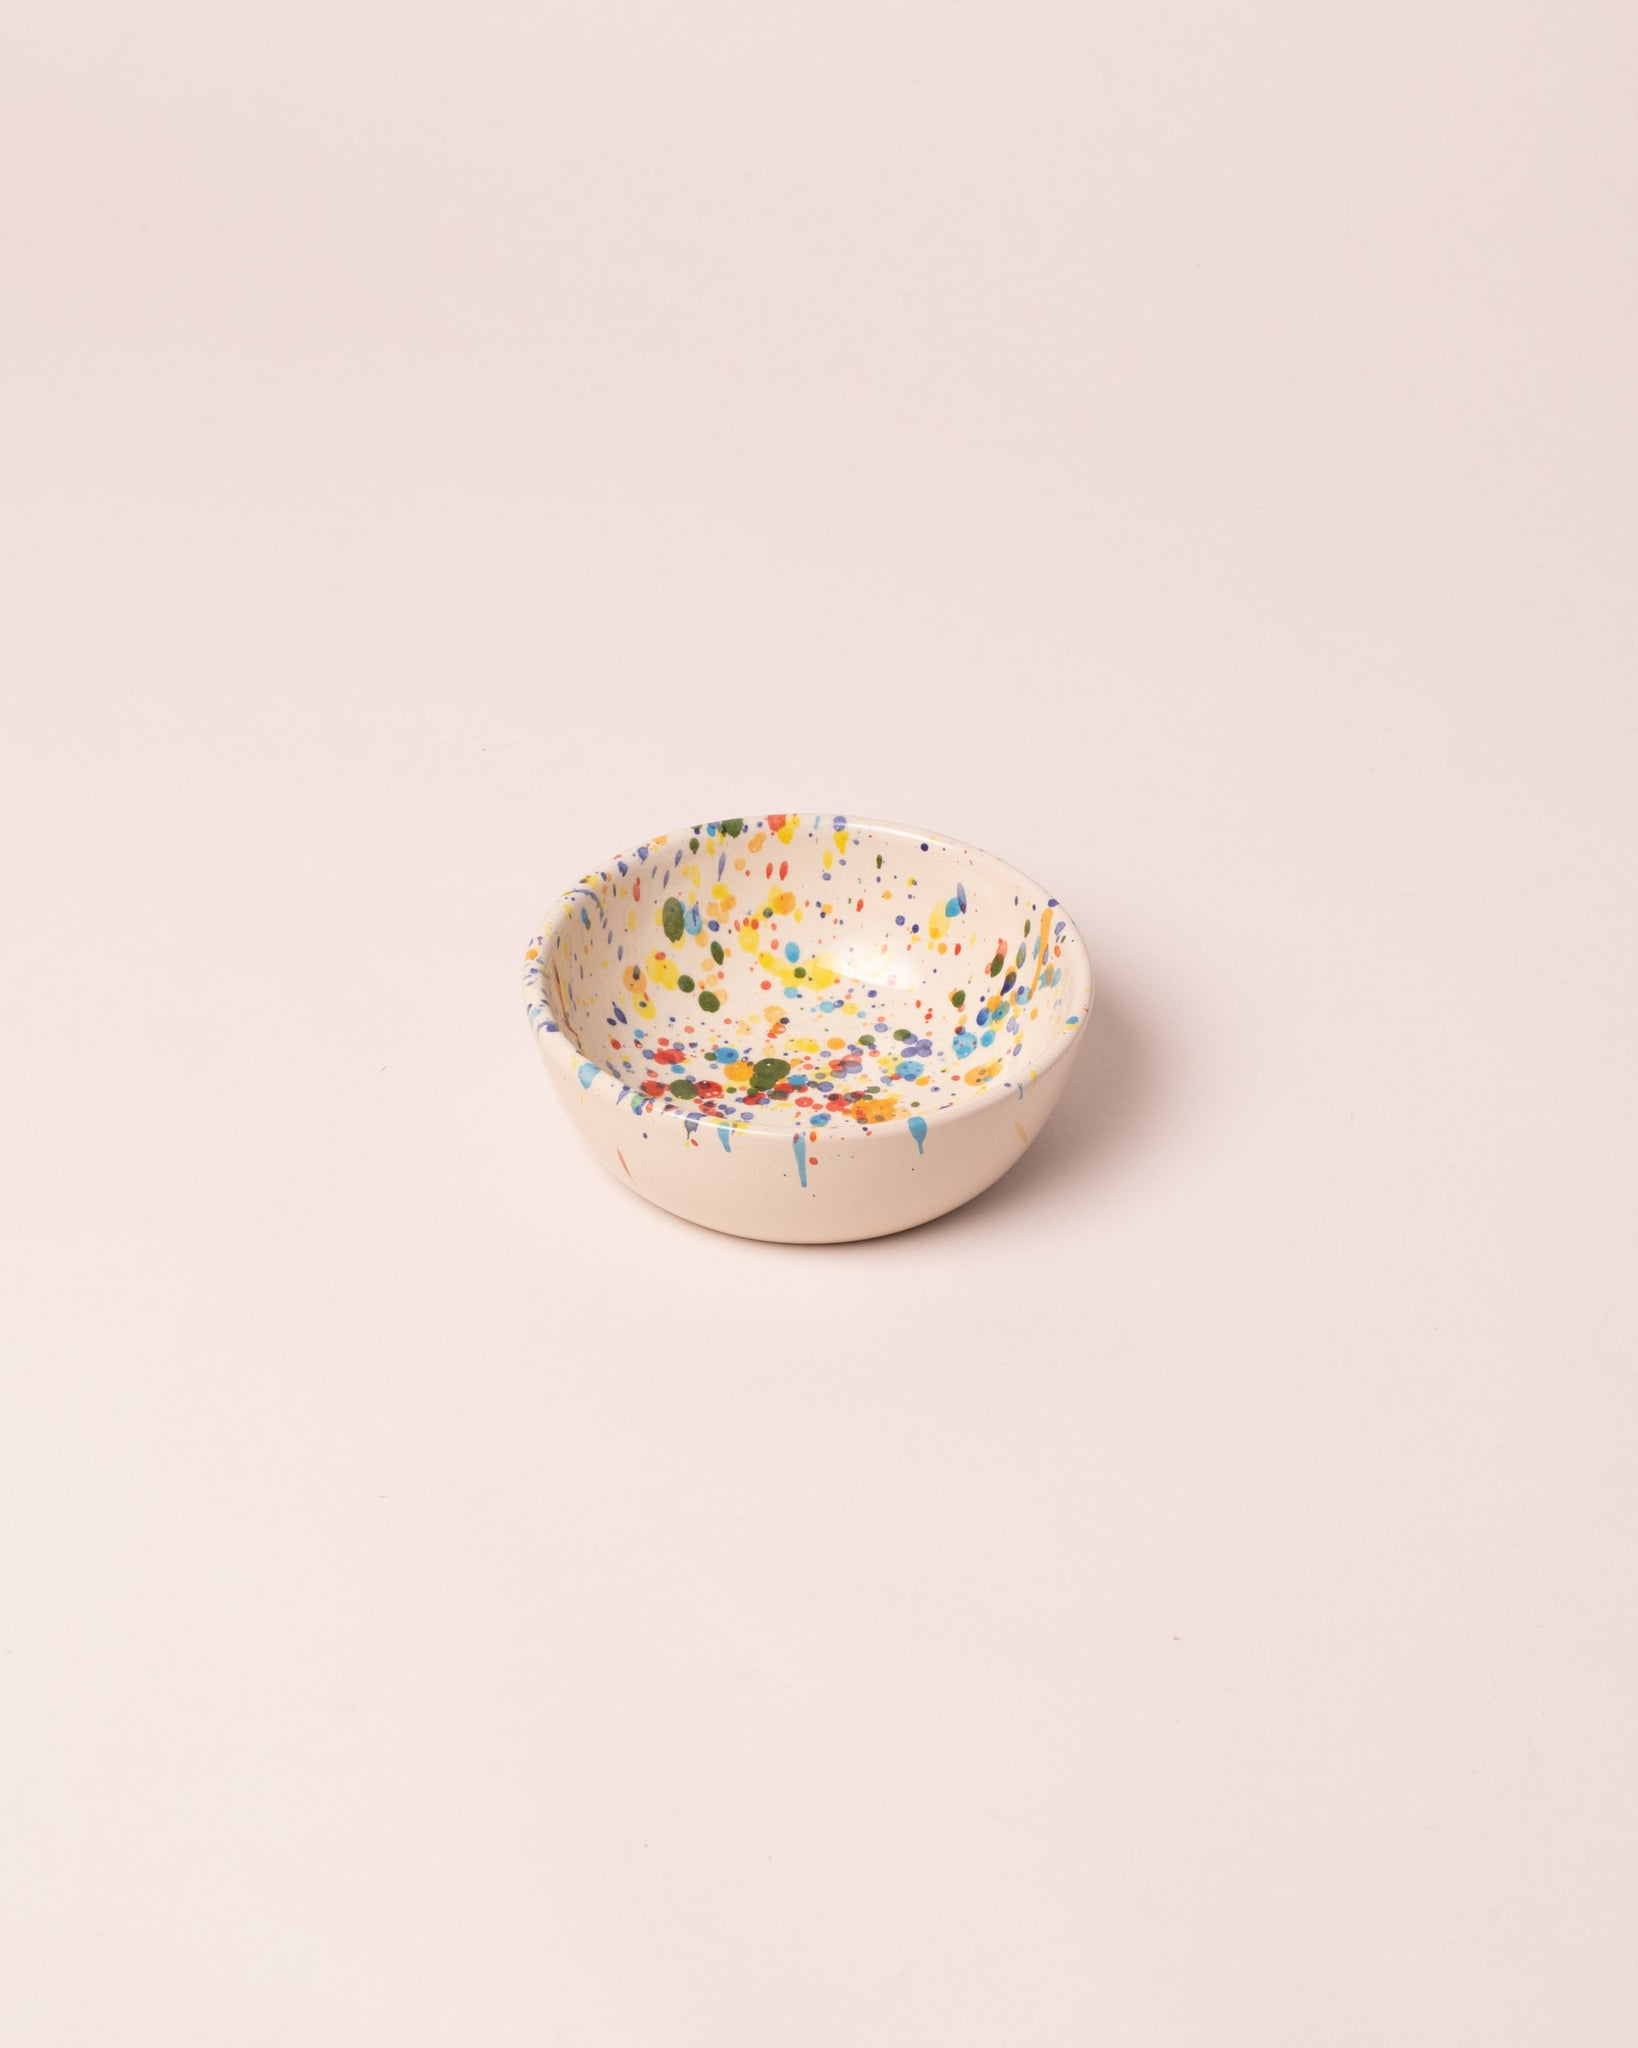 La Ceramica Dessert Bowl colored drops